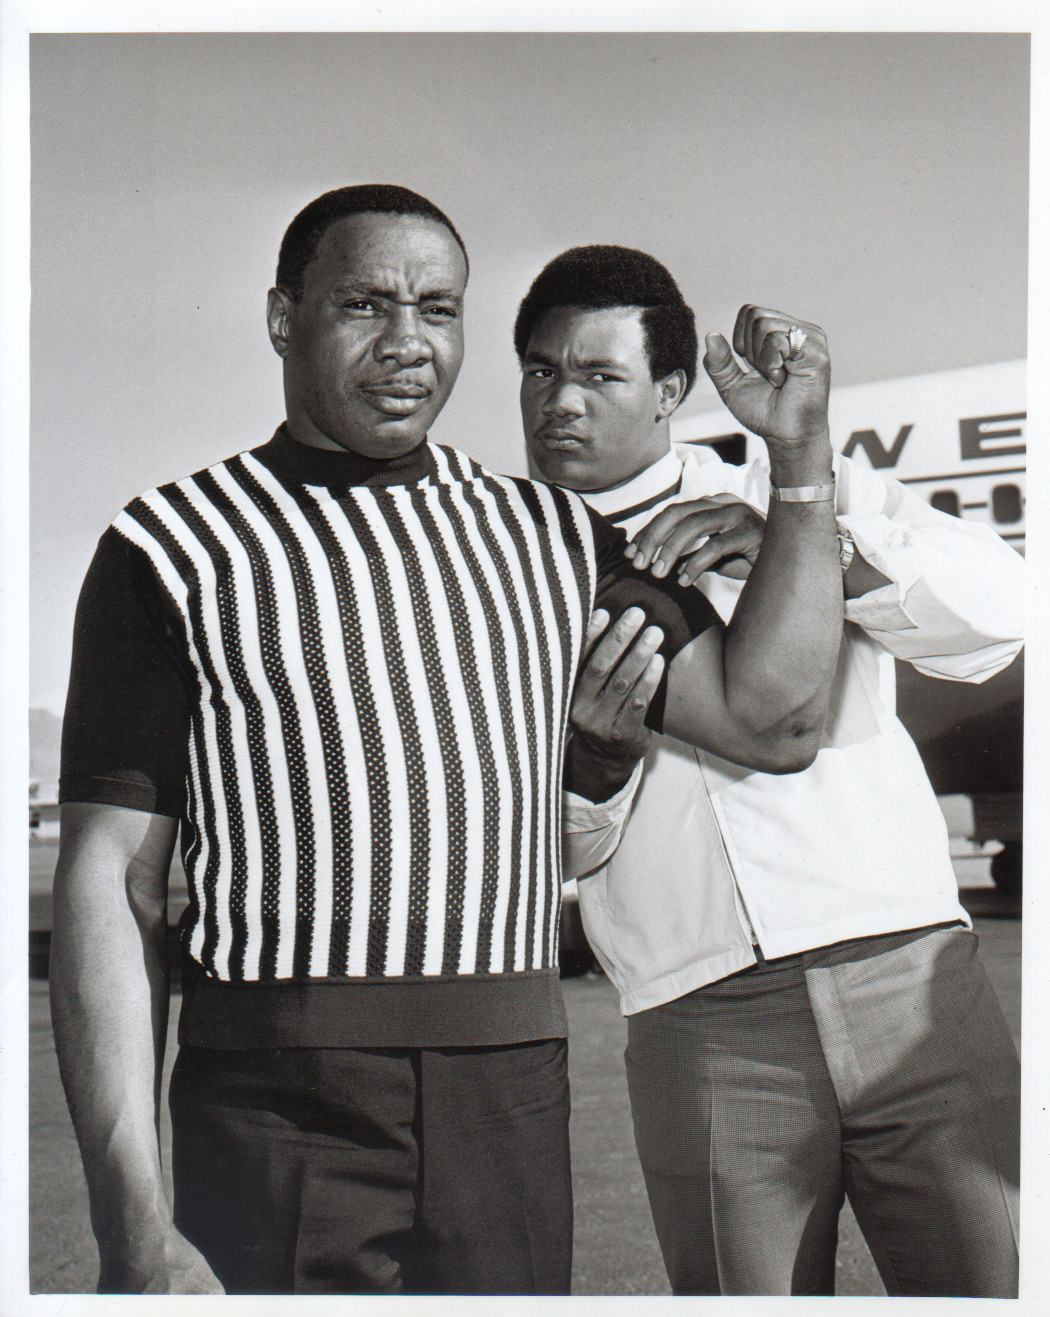 Sonny Liston and George Foreman.